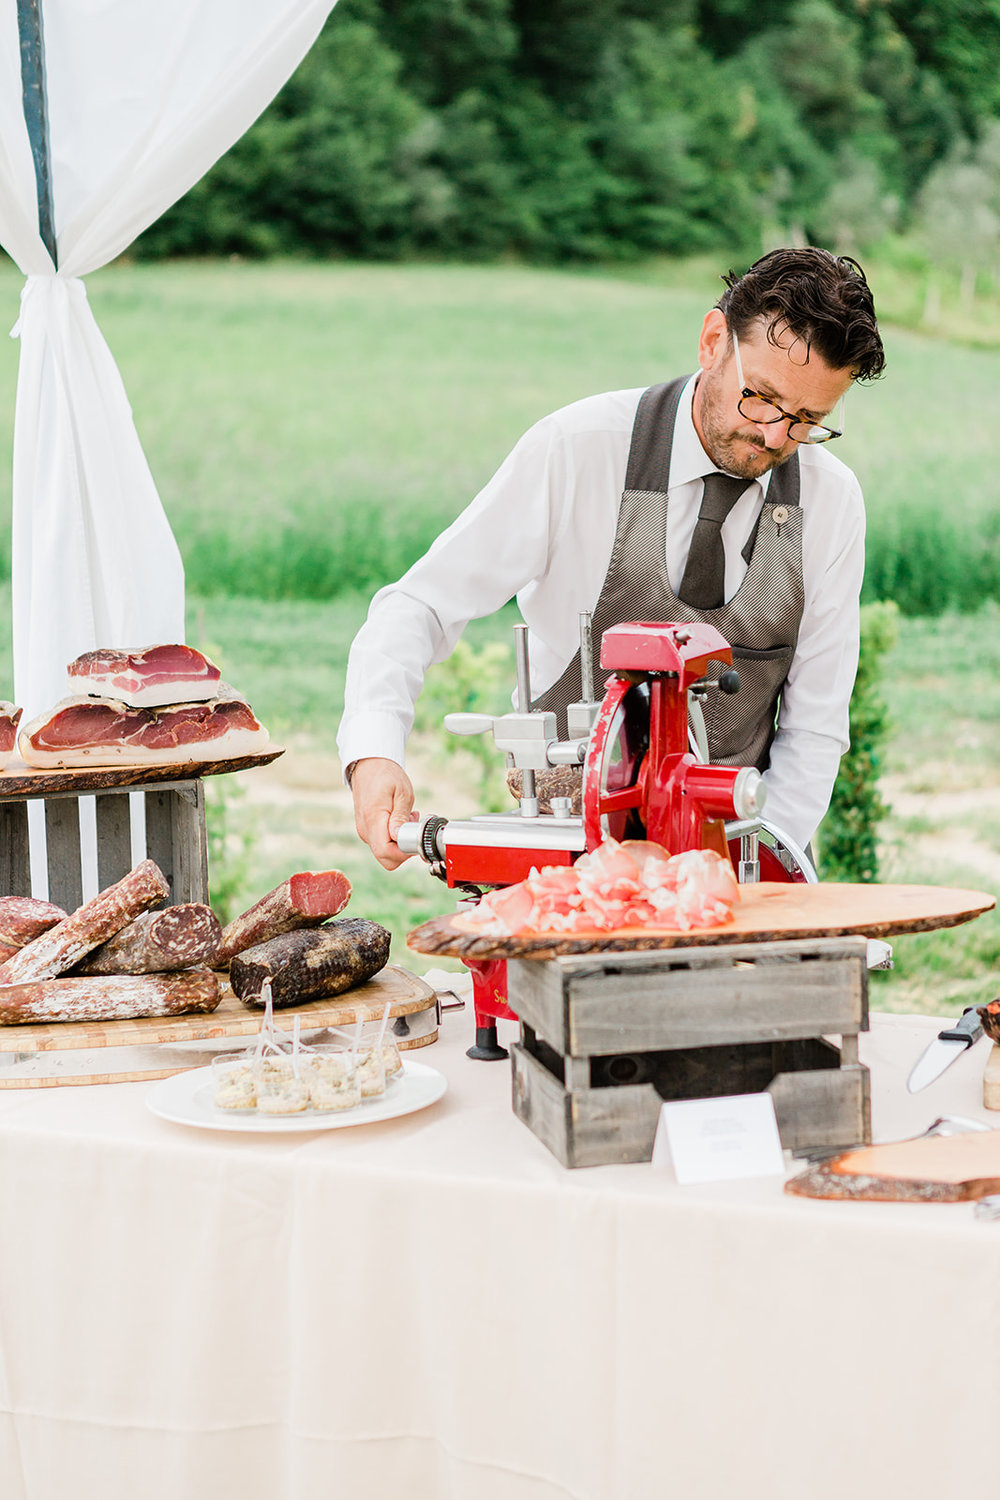 How Much Does Wedding Catering Cost In Italy Wedding Photographer